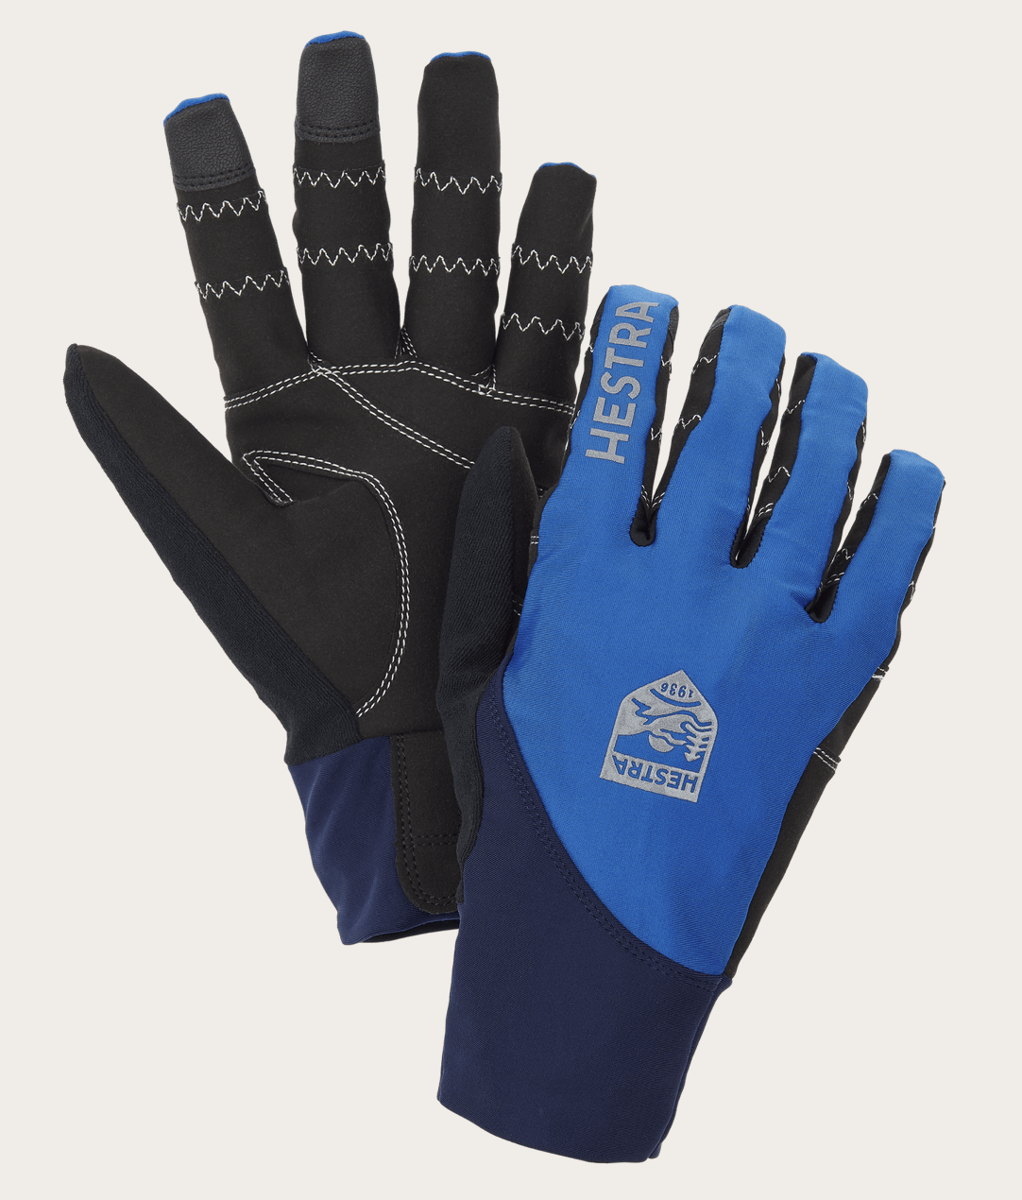 Bilde av Hestra  Bike Ergo Grip Race Cut - 5 finger Royal/Marin